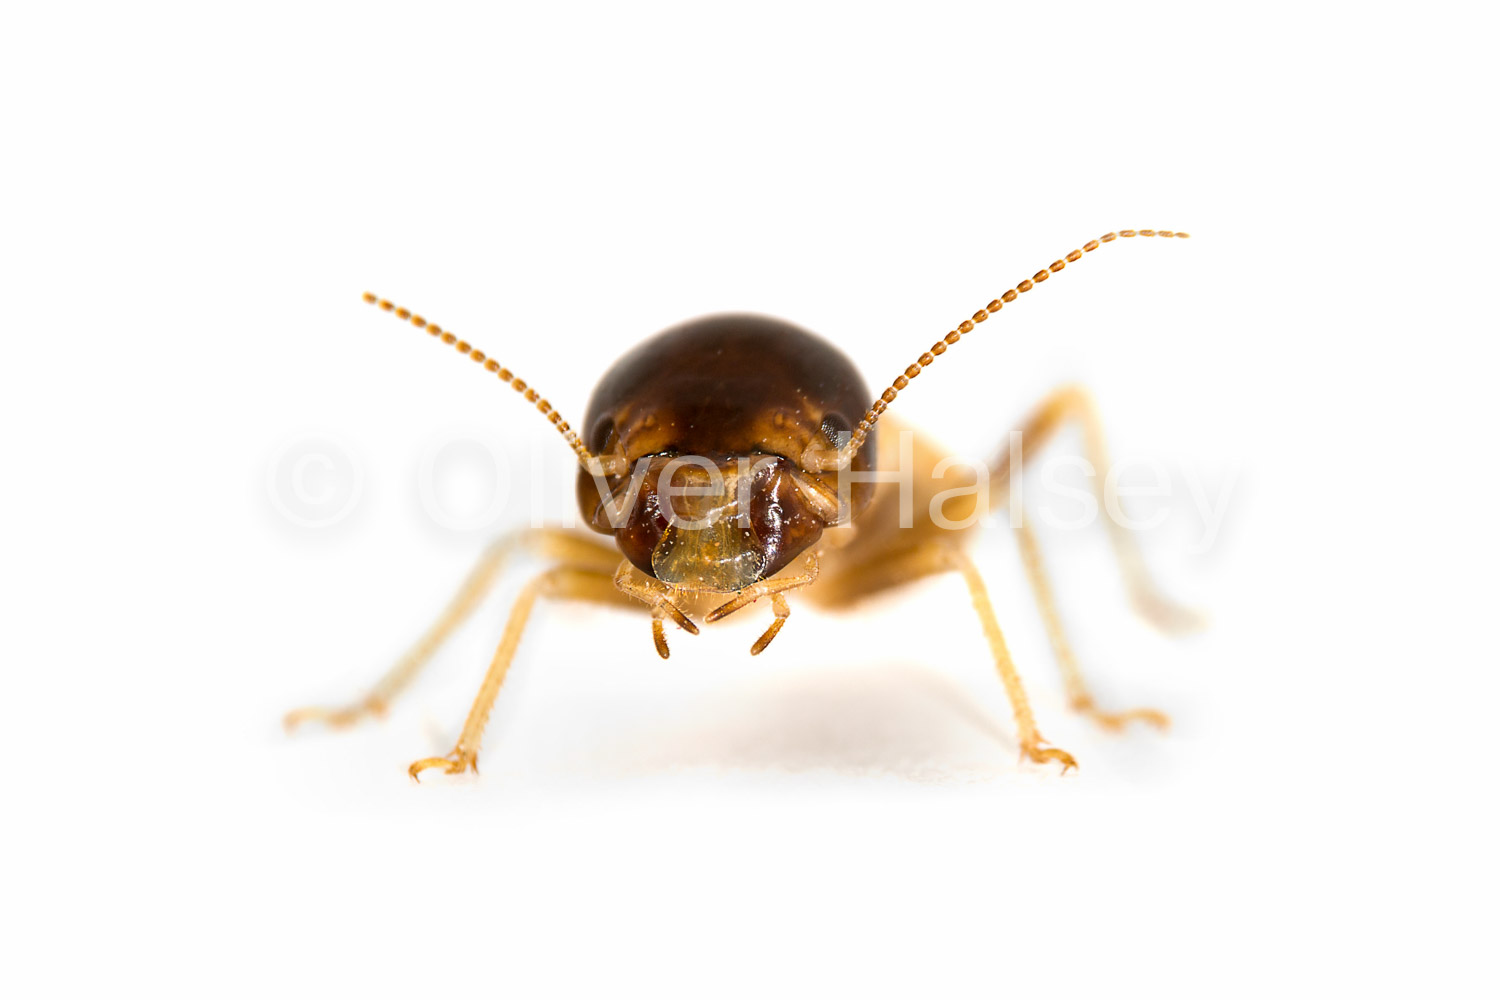 M90.  Harvester termite worker -  Hodotermes mossambicus